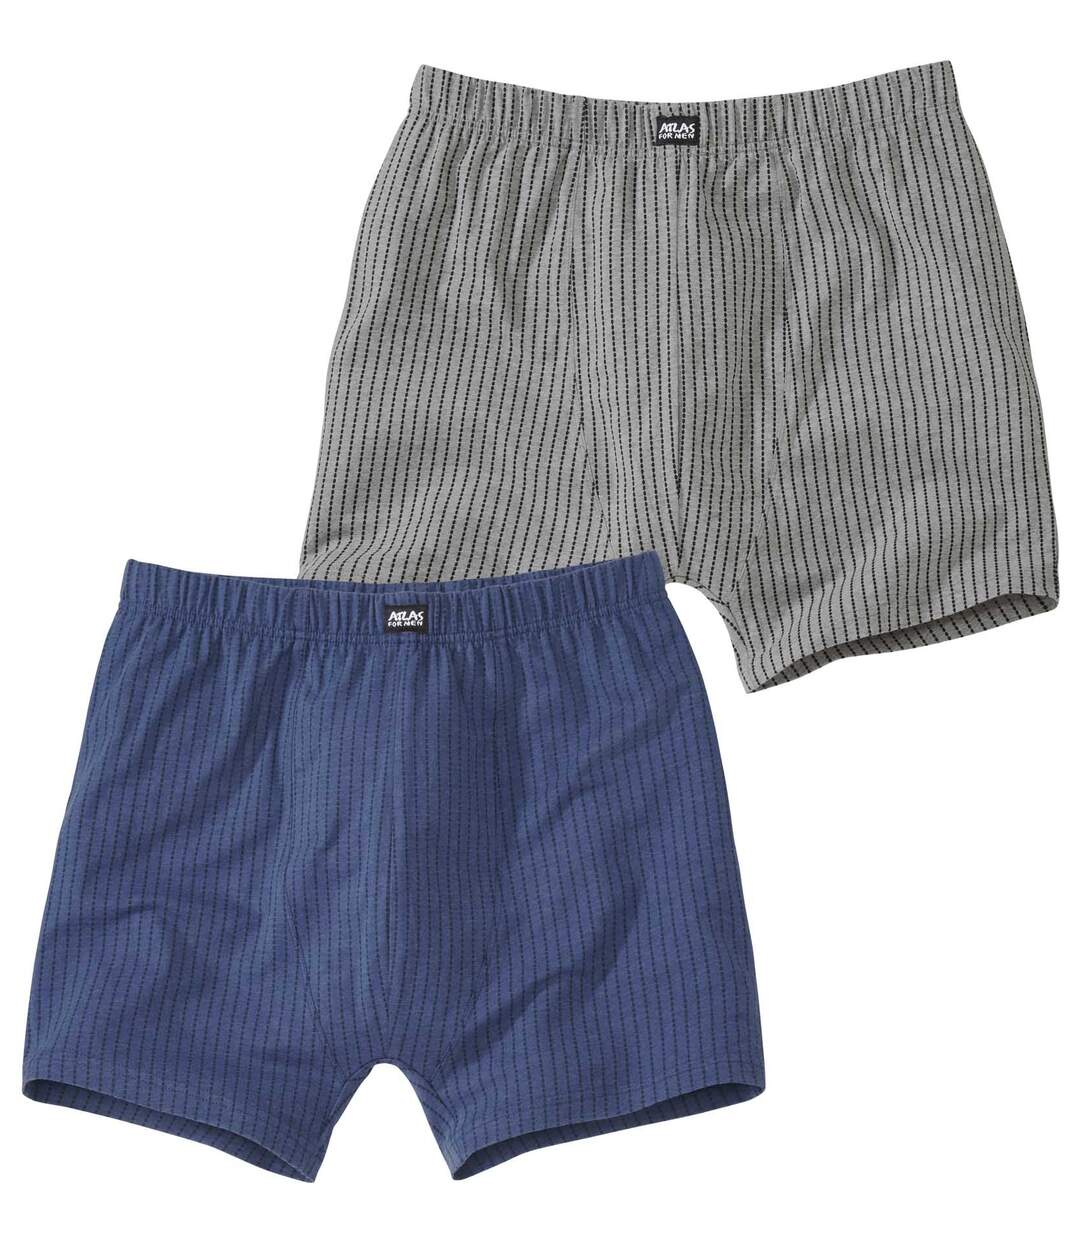 Pack of 2 Men's Striped Hipsters